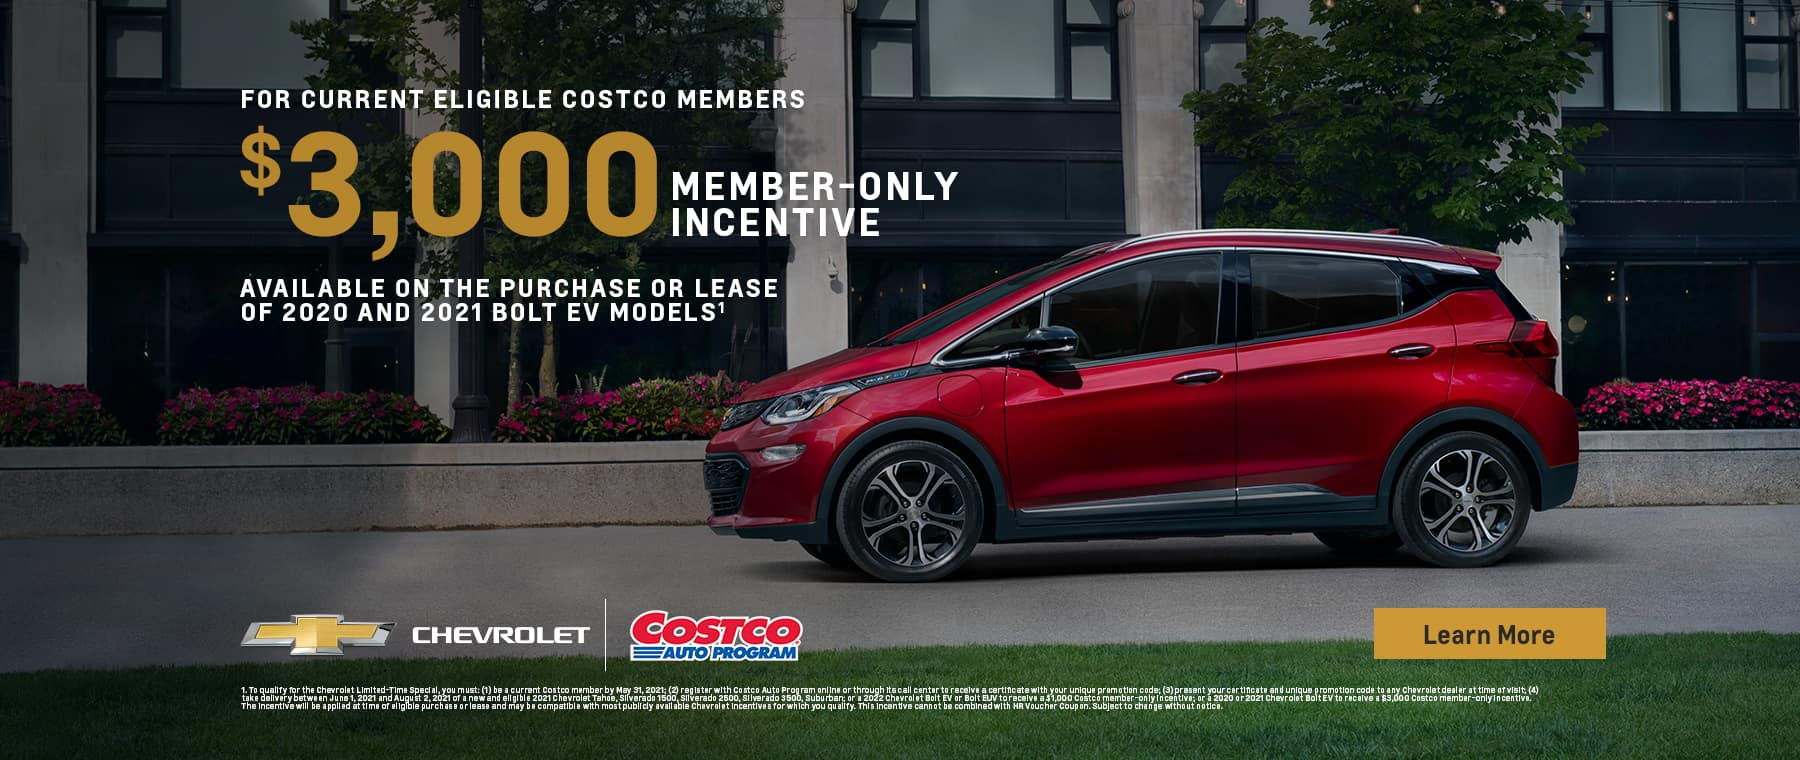 3000 member only incentive